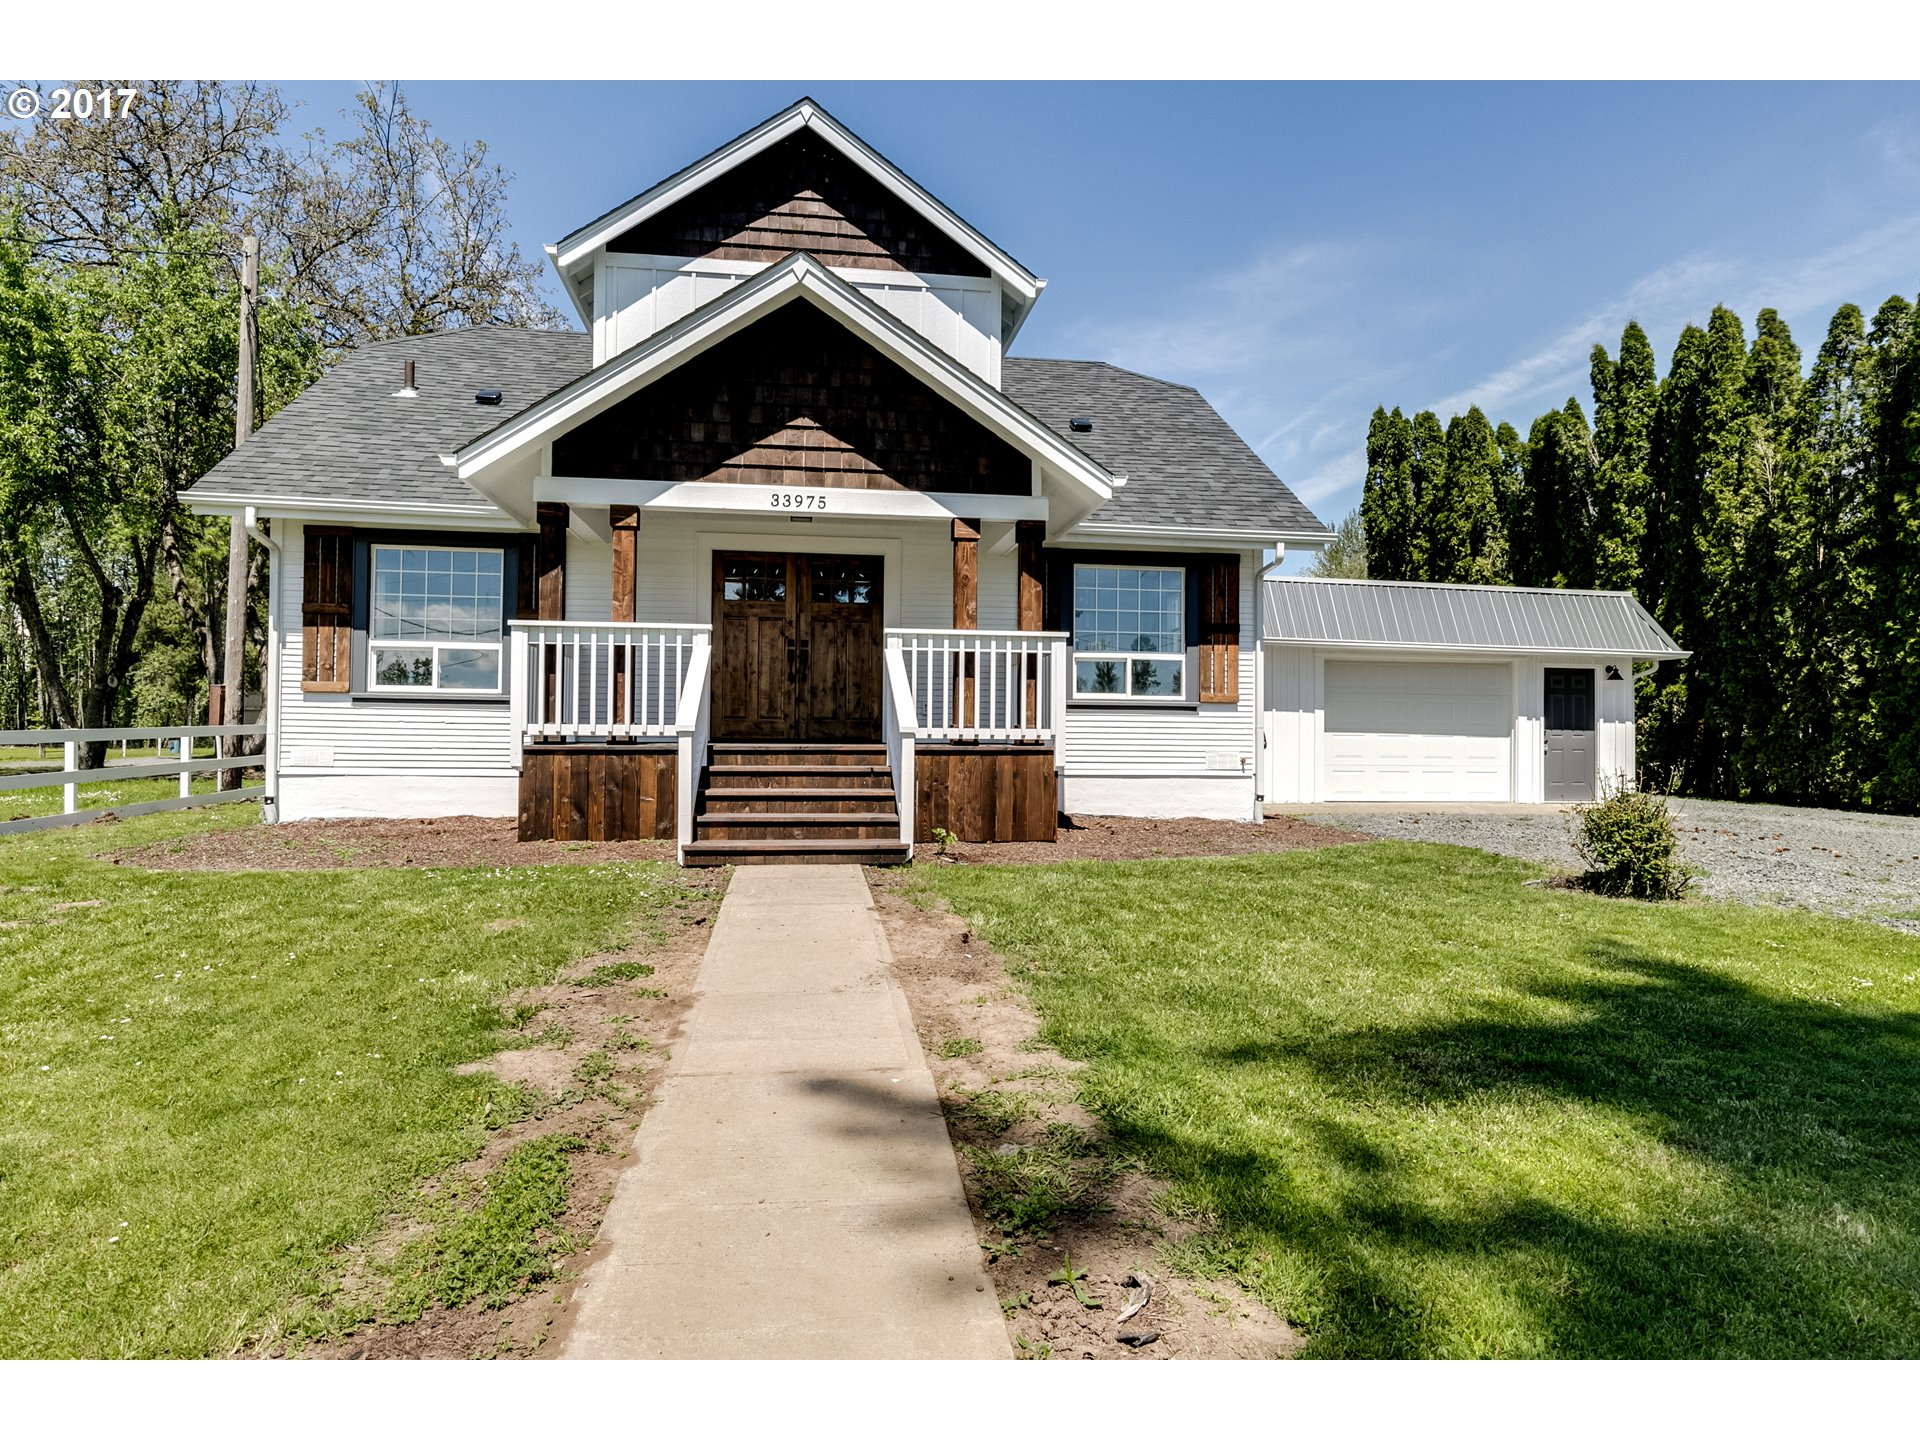 33975 SEAVEY LOOP RD, Eugene, OR 97405